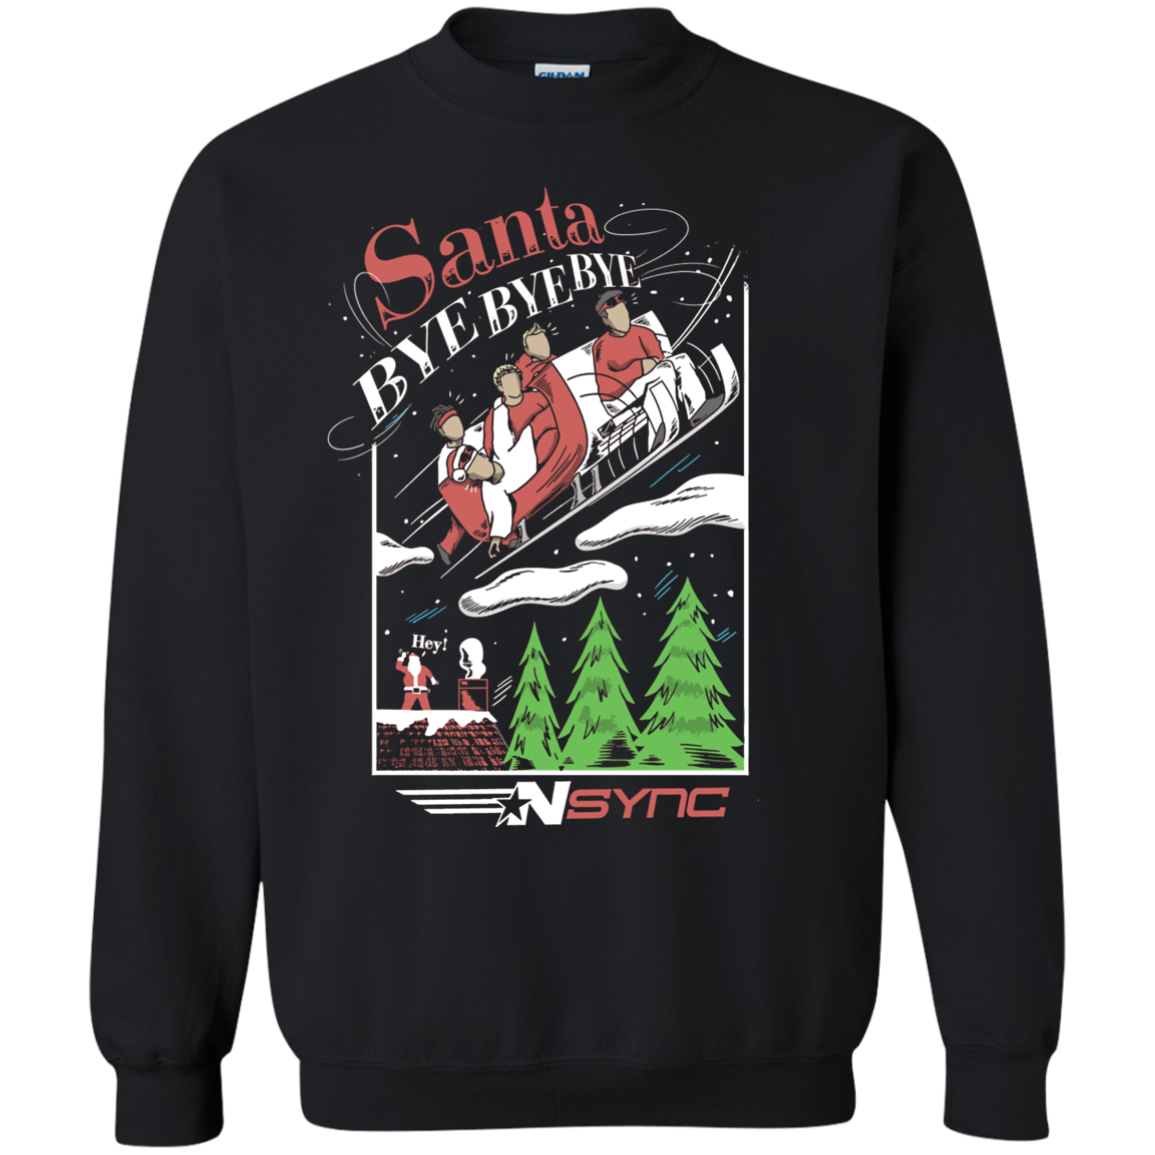 NSYNC holiday merch dropped for your nostalgia gift guides ...